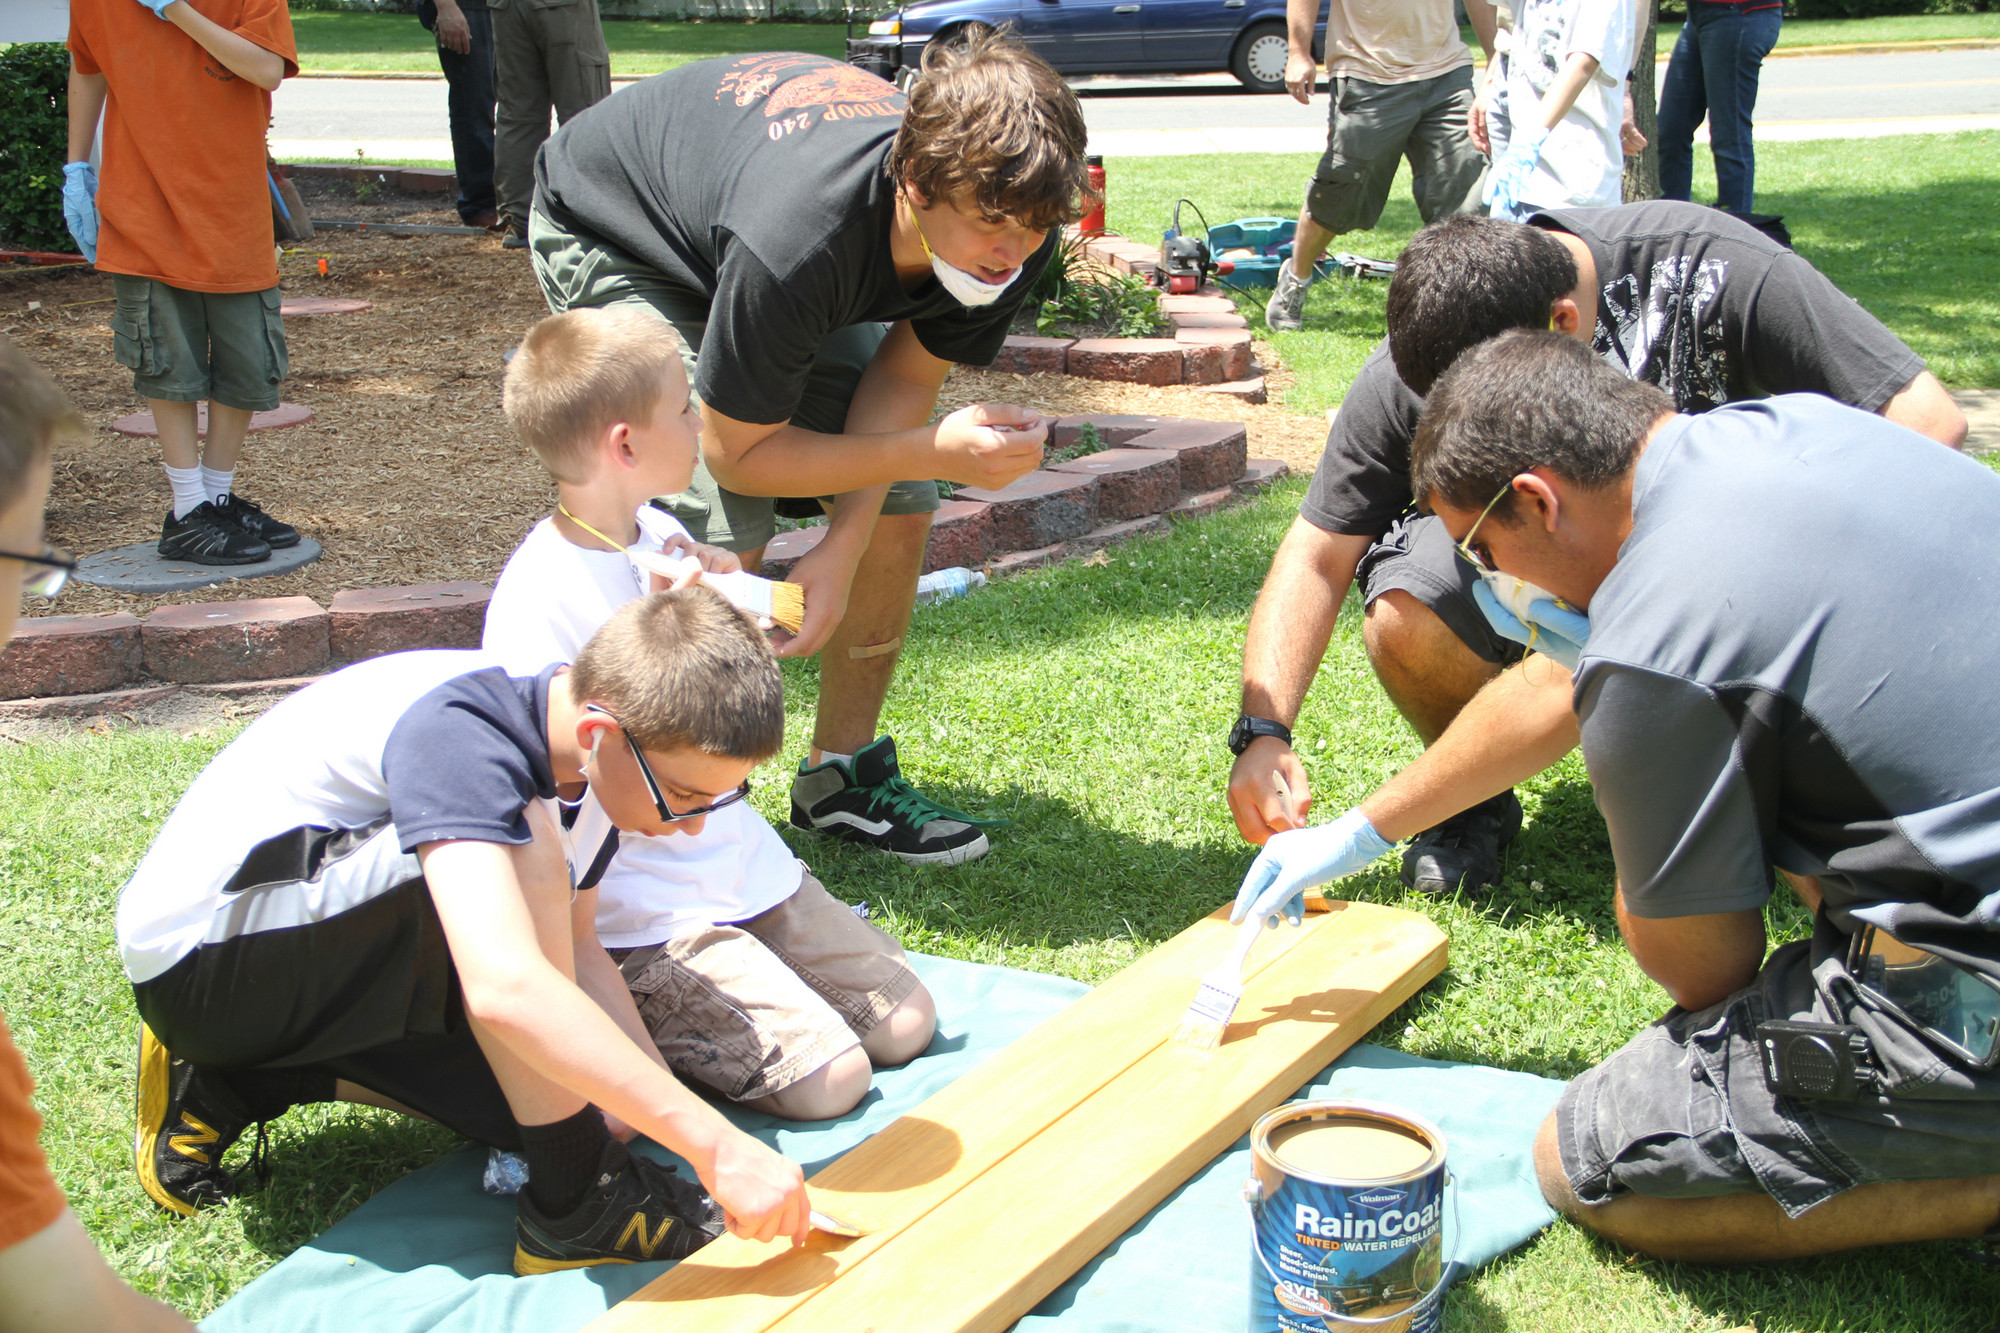 Future Eagle Scout Antonio Verderosa supervises the work being done on the picnic table.